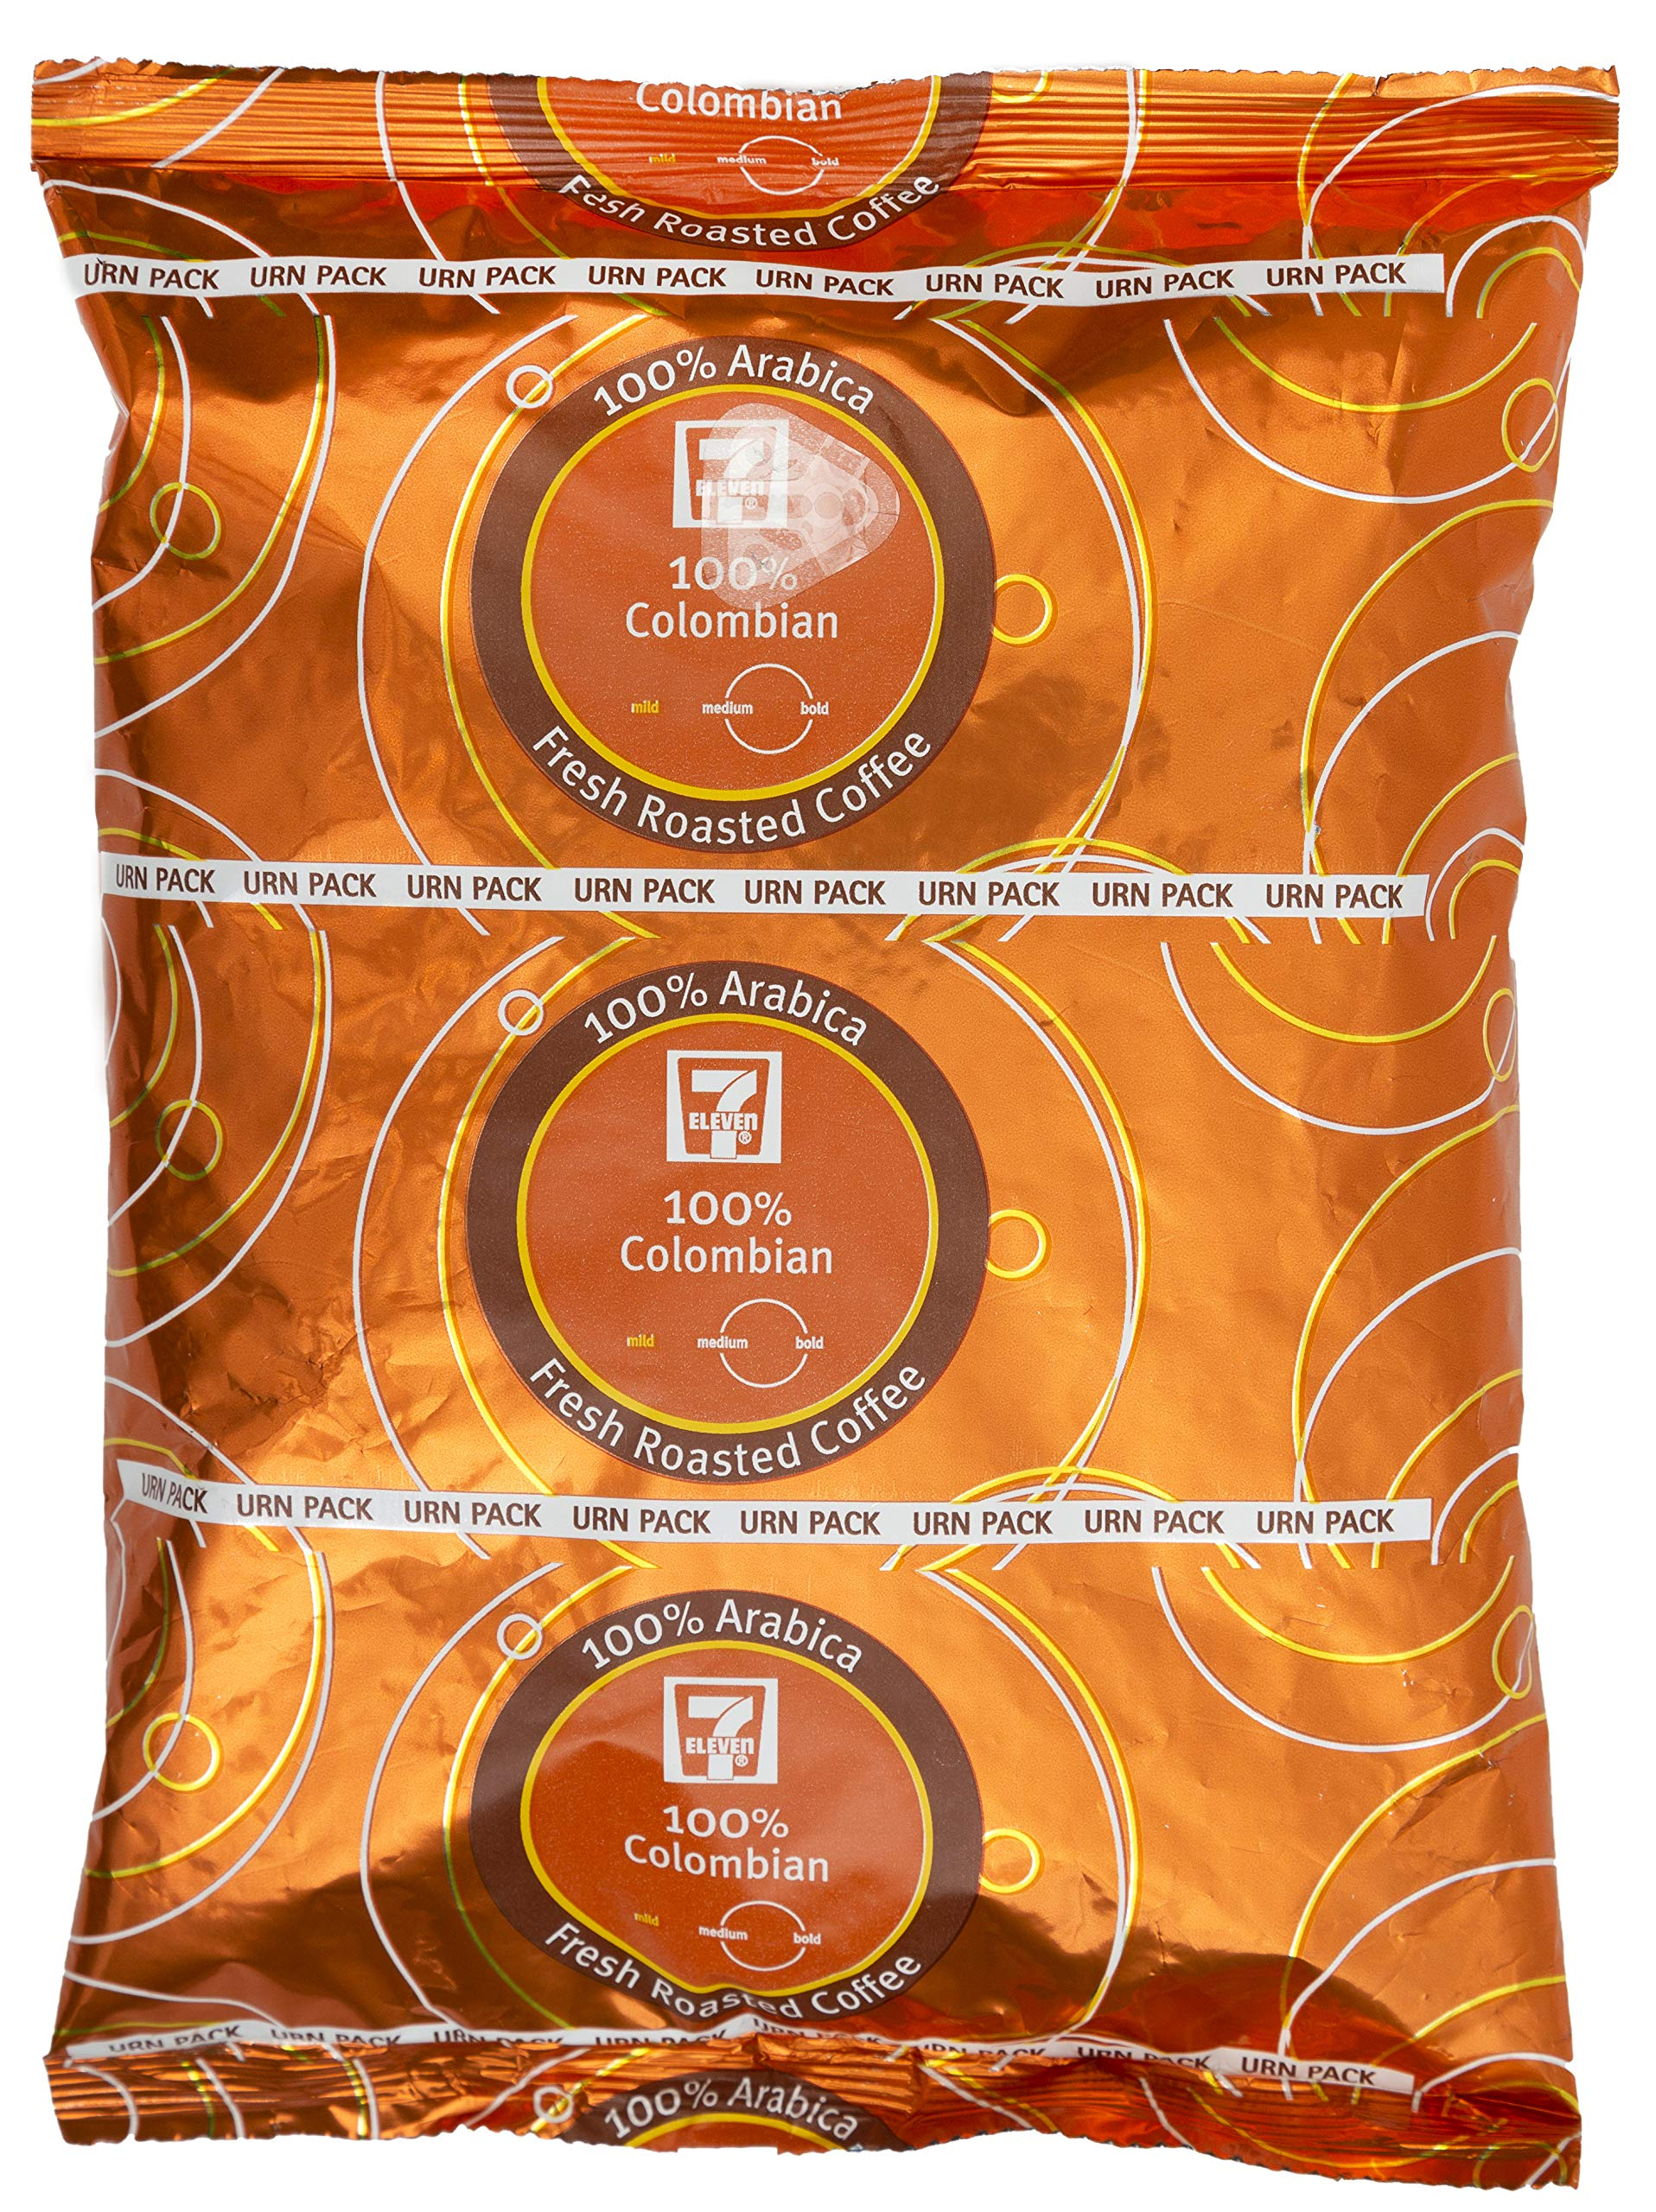 7-Eleven Whole Bean Coffee, 1 lb. Bags, 9-Pack (100% Colombian) by 7-Eleven (Image #1)